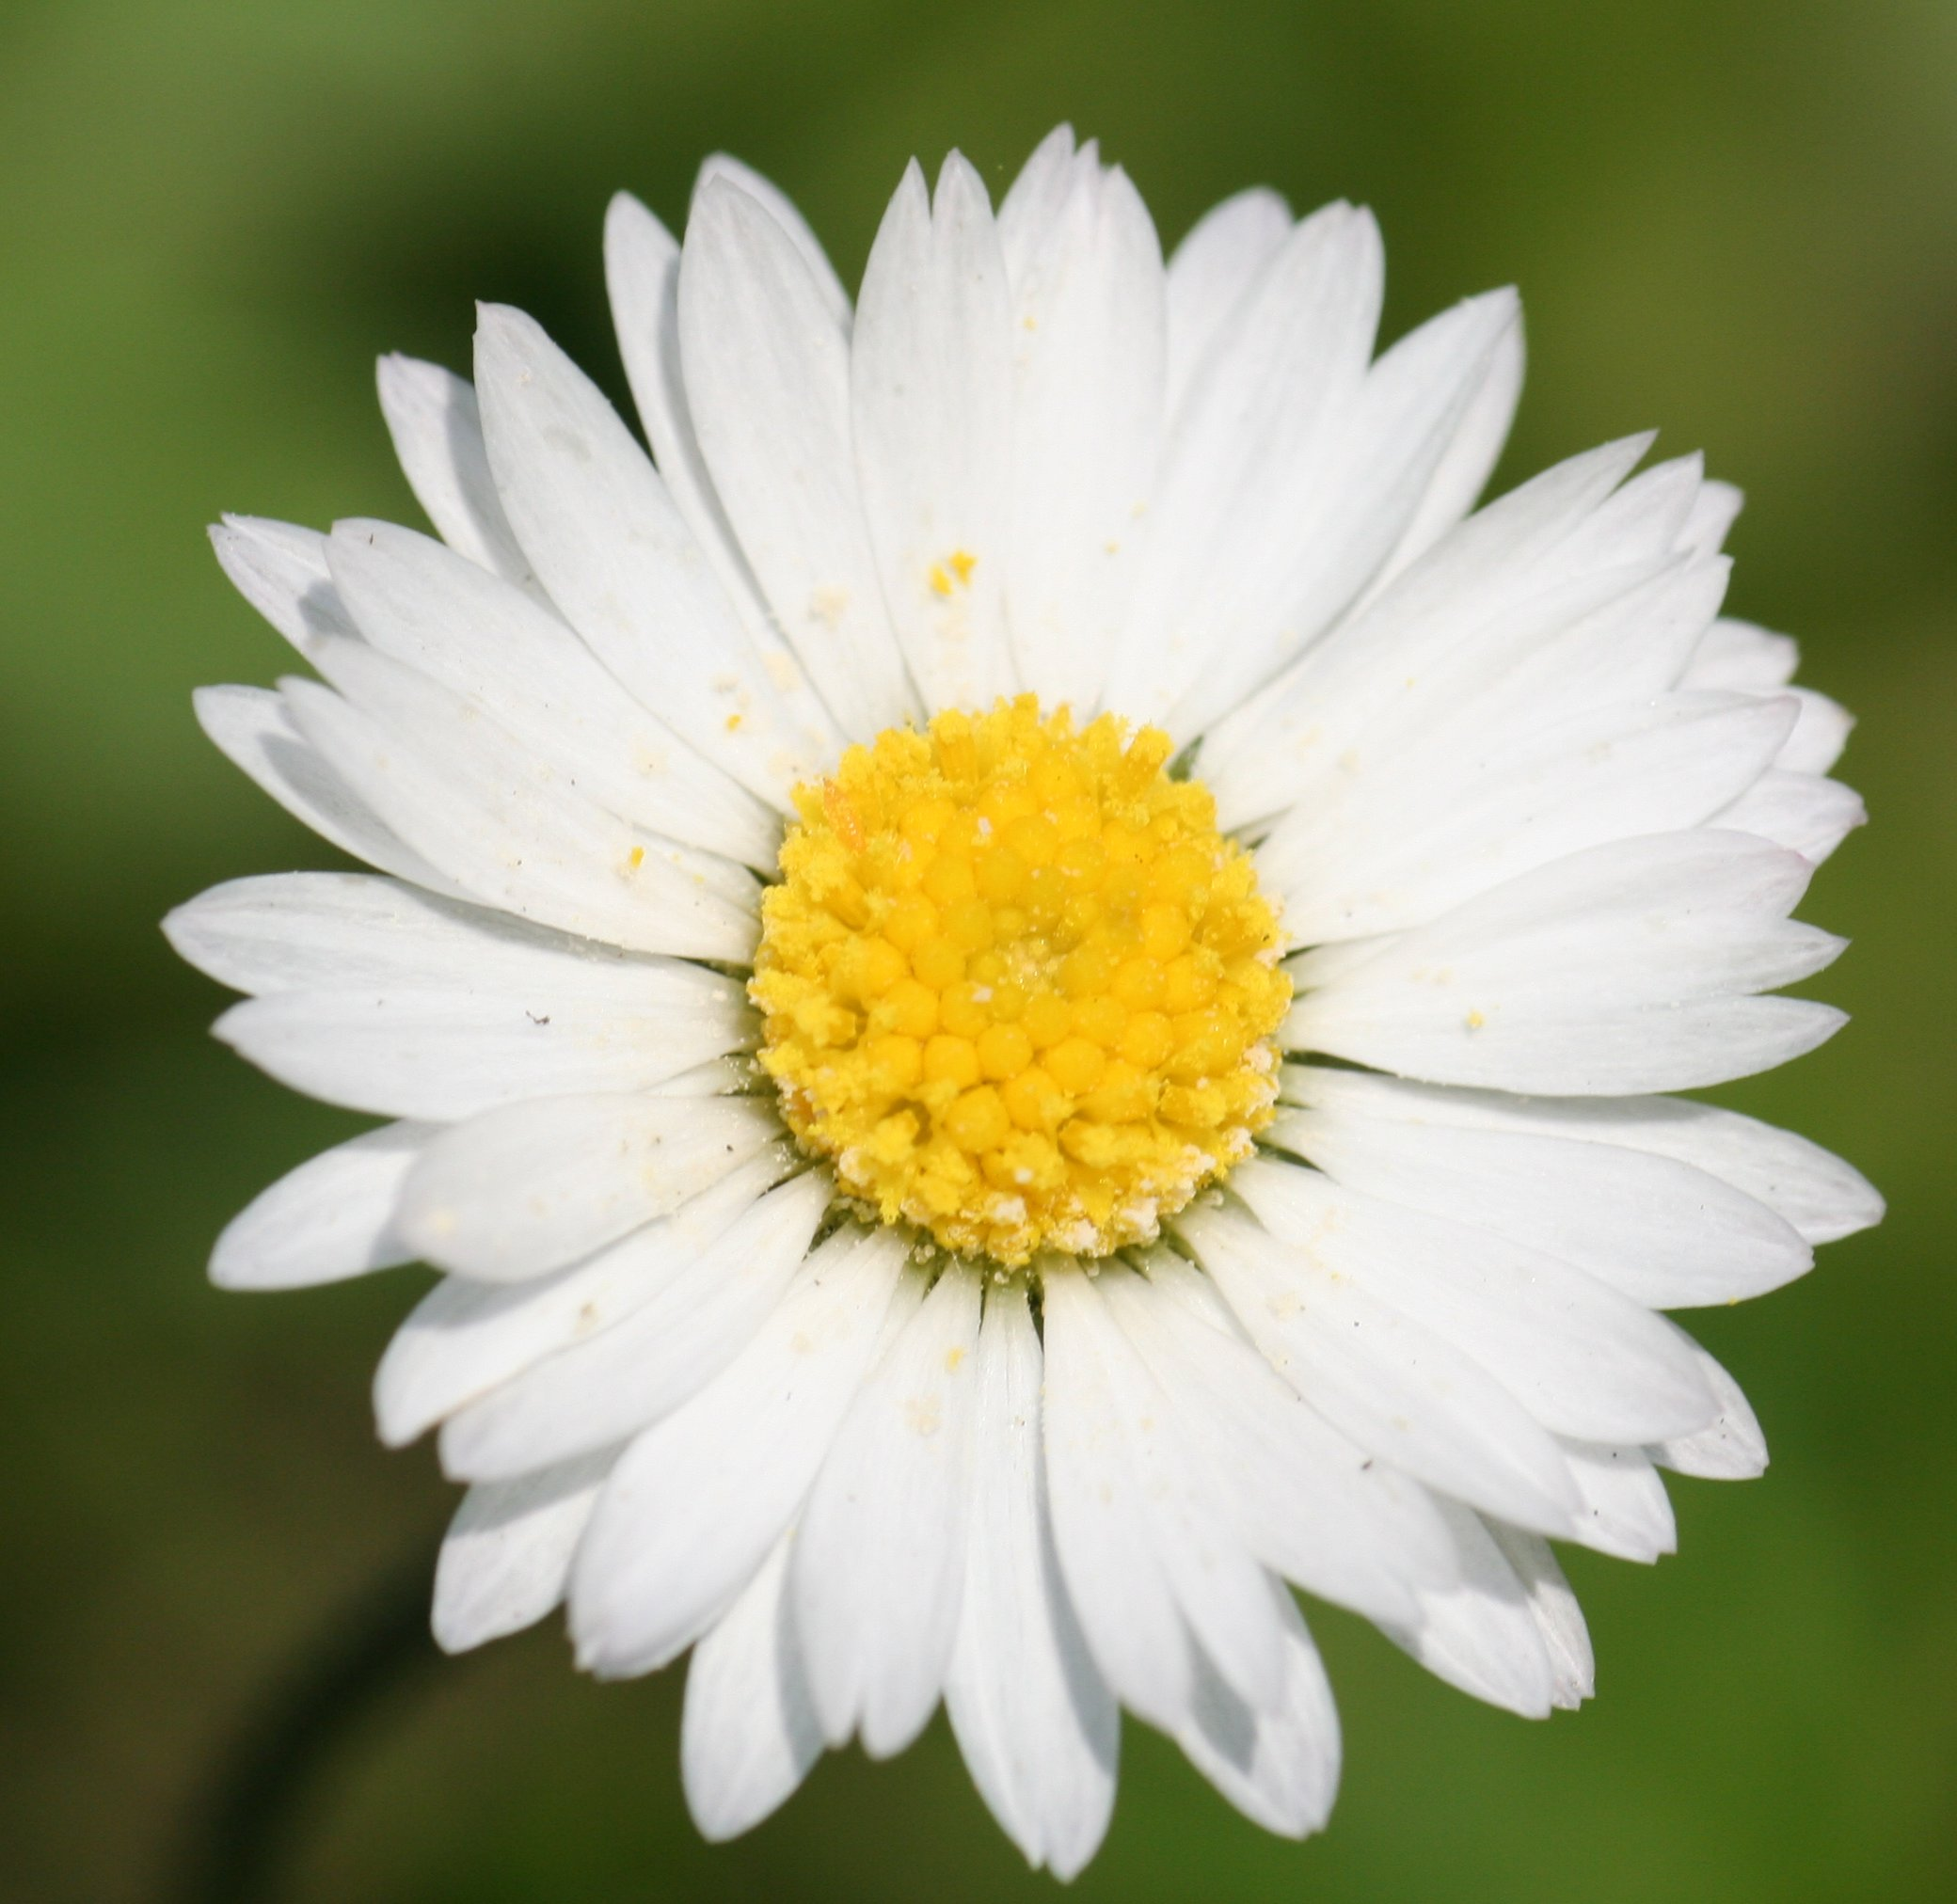 File:English Daisy (Bellis Perennis).jpg - Wikimedia Commons: commons.wikimedia.org/wiki/File:English_Daisy_(Bellis_Perennis).jpg